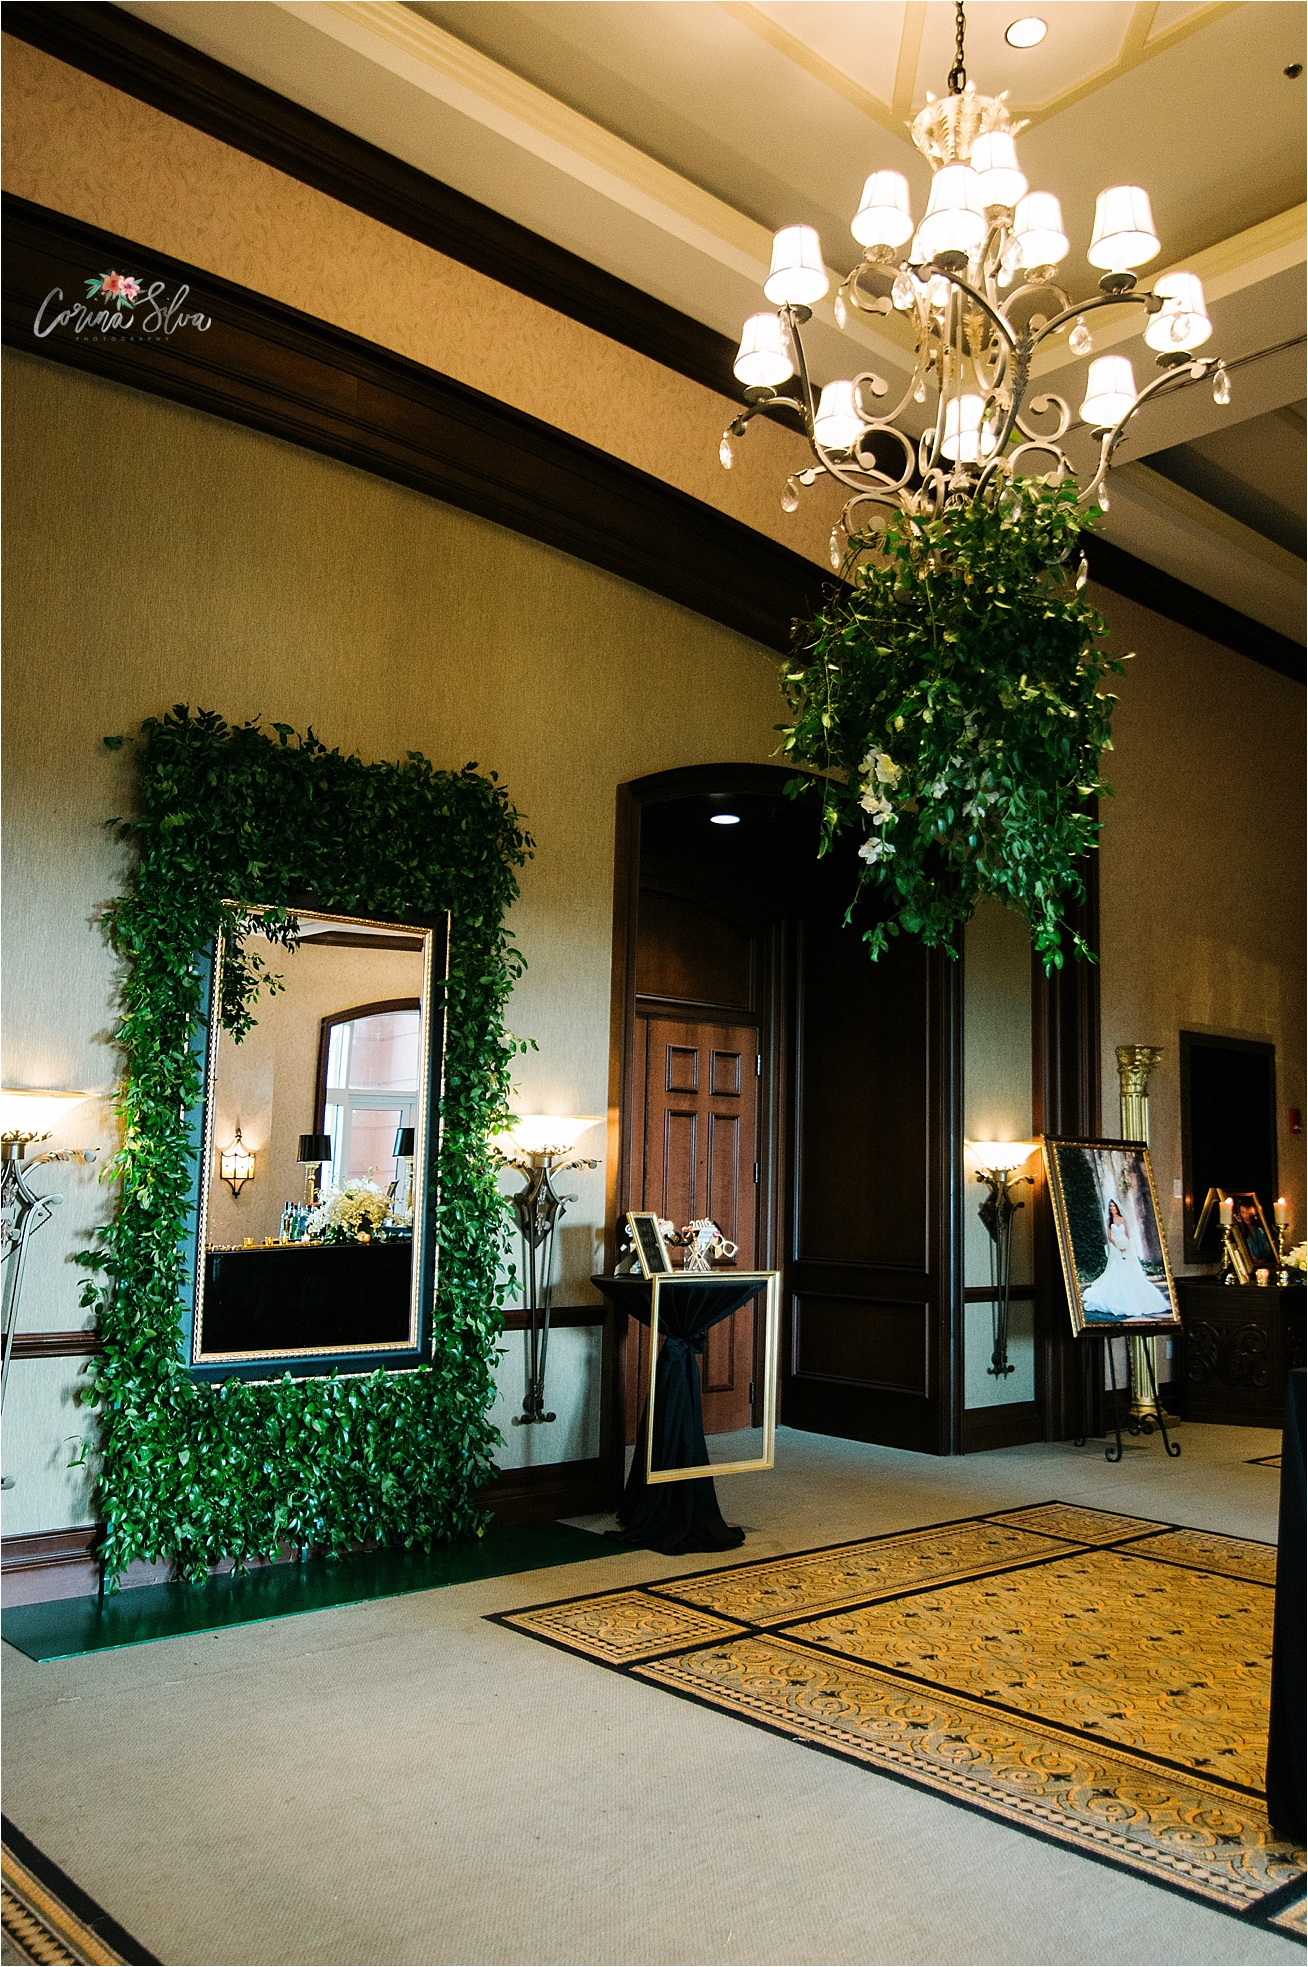 RSG-Event-and-Designs-luxury-wedding-decor-photos, Corina-Silva-Studios_0026.jpg